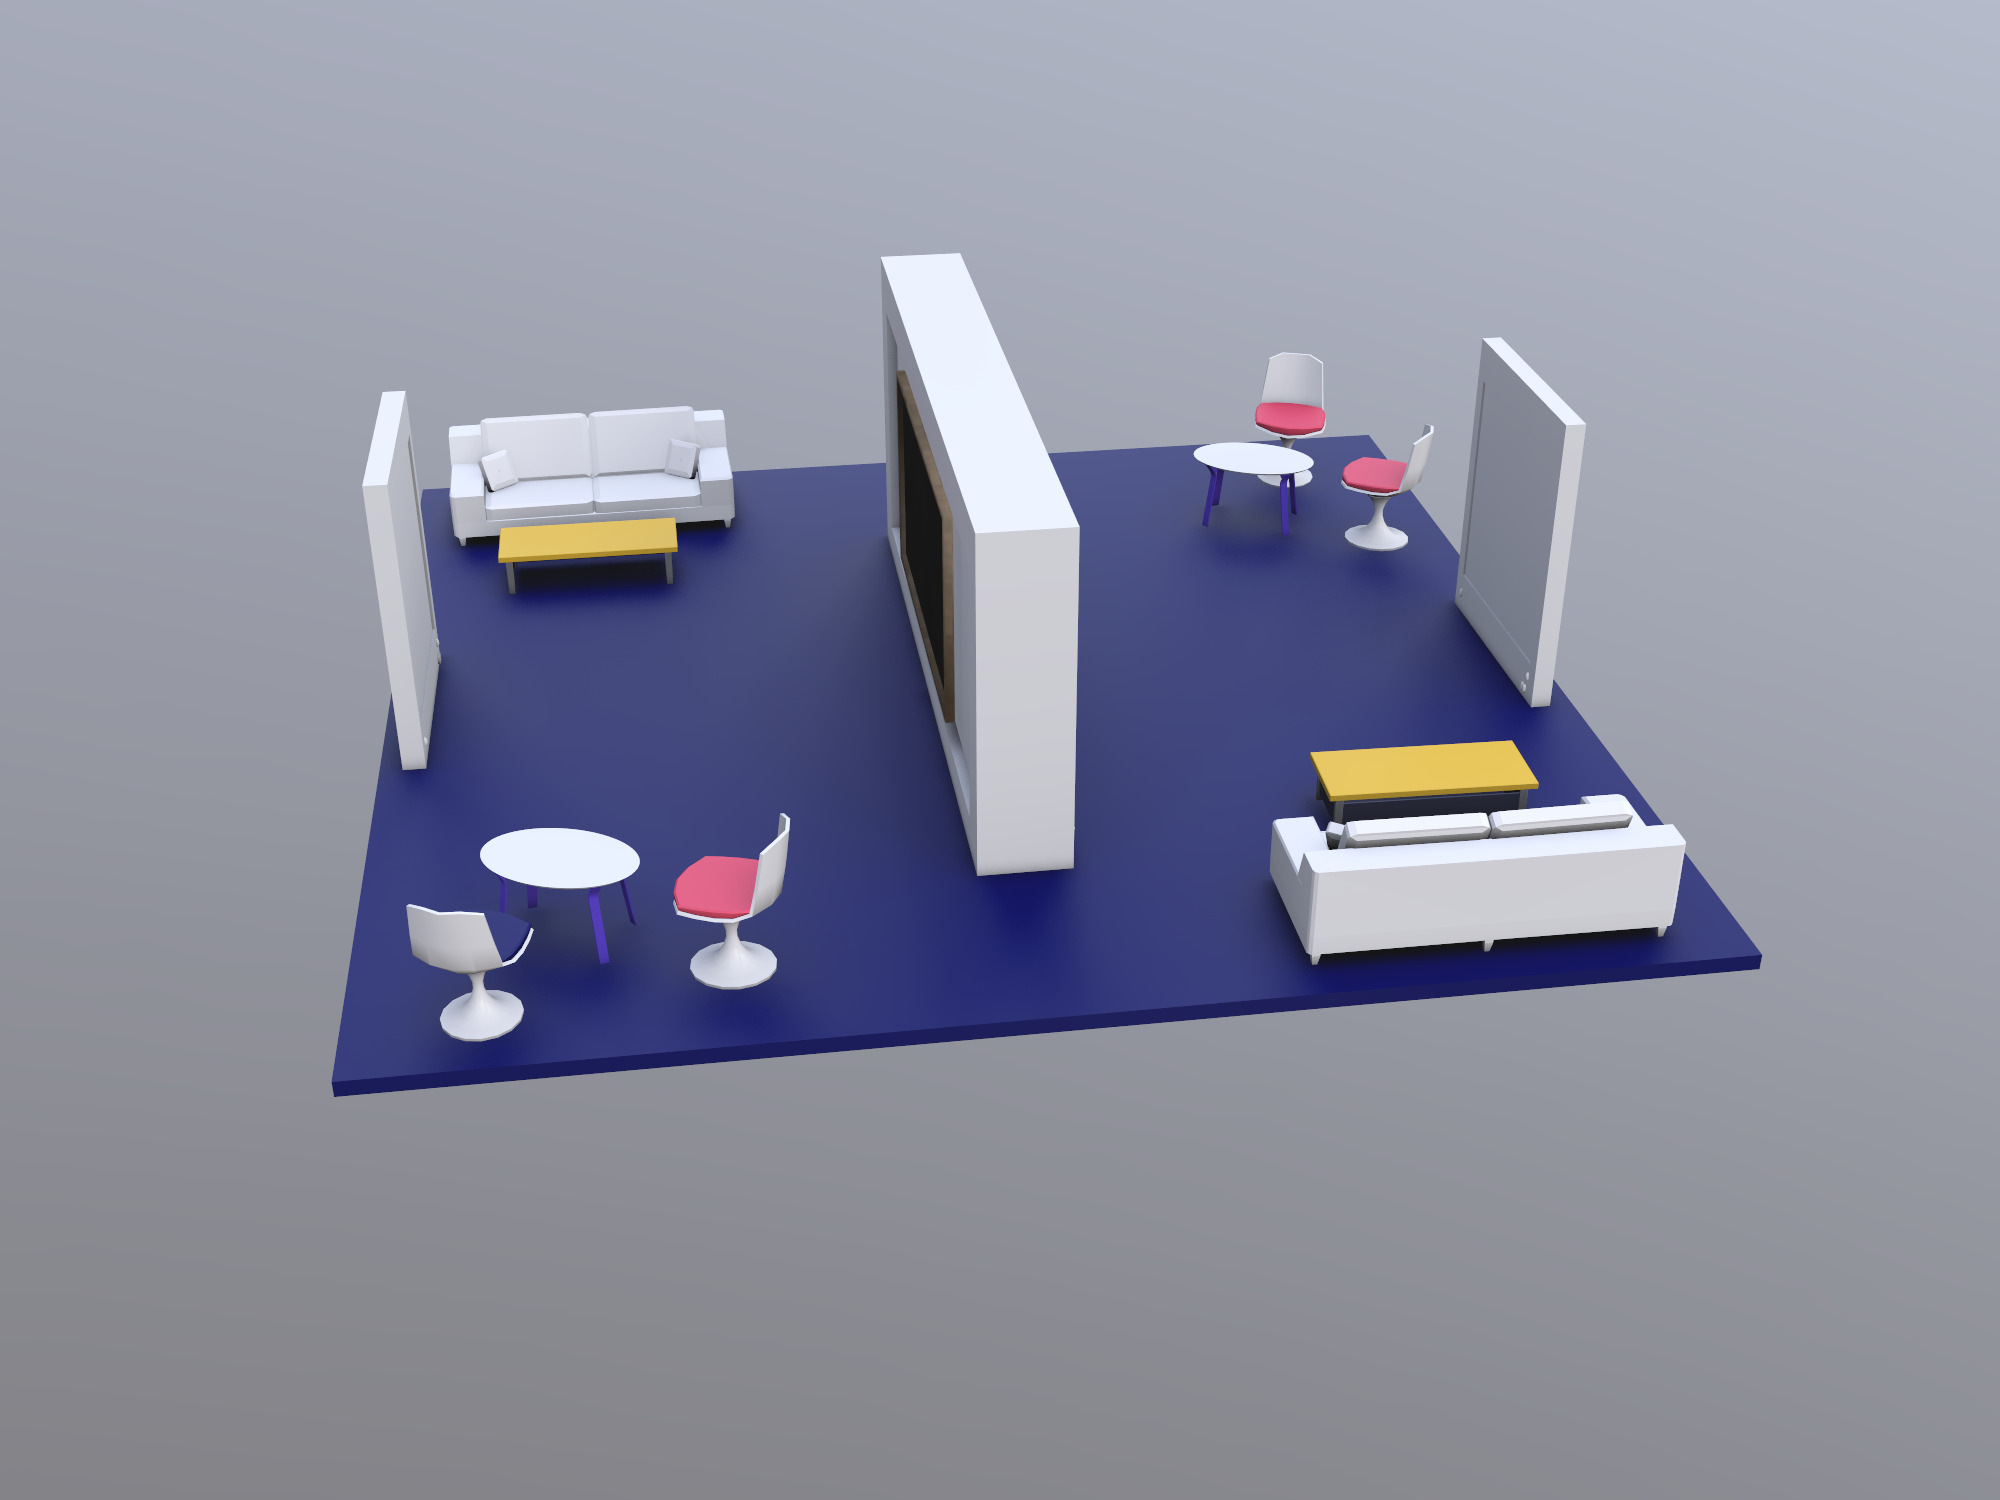 CSI Booth Design Concept - 3D design by Shamir Dawood on Nov 16, 2018